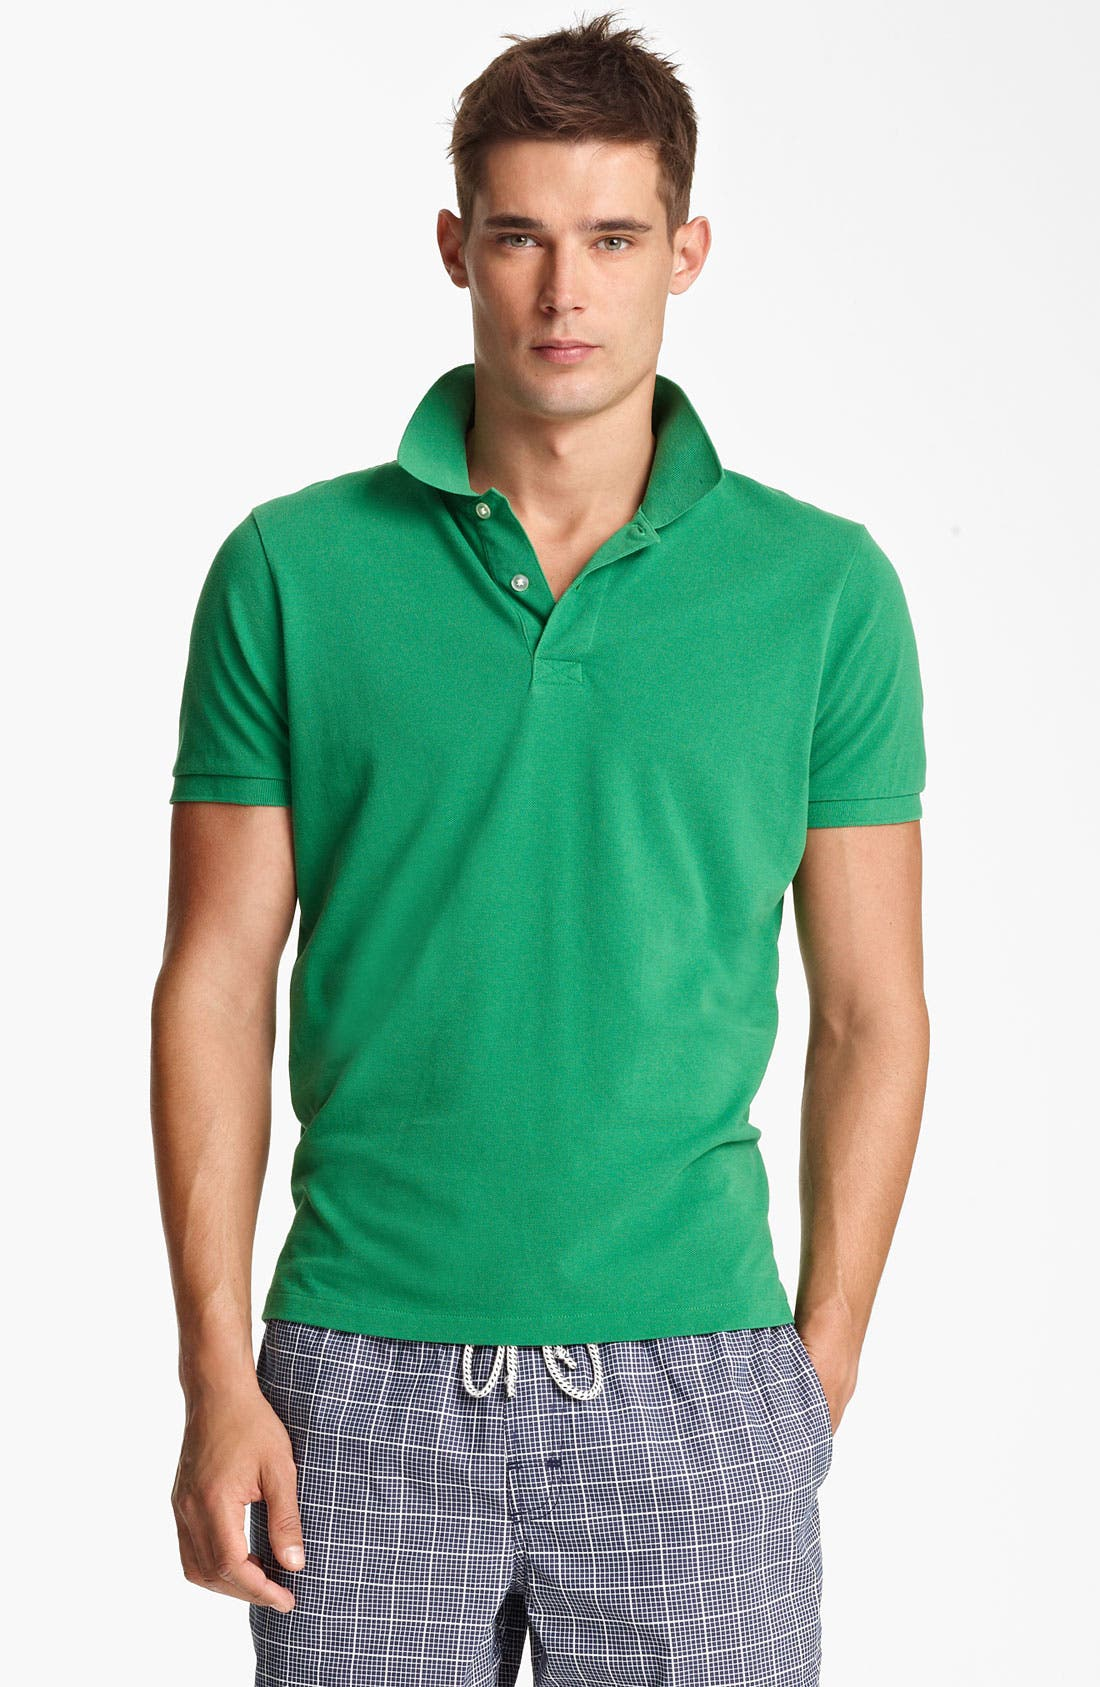 Alternate Image 1 Selected - Jack Spade 'Mercer' Polo